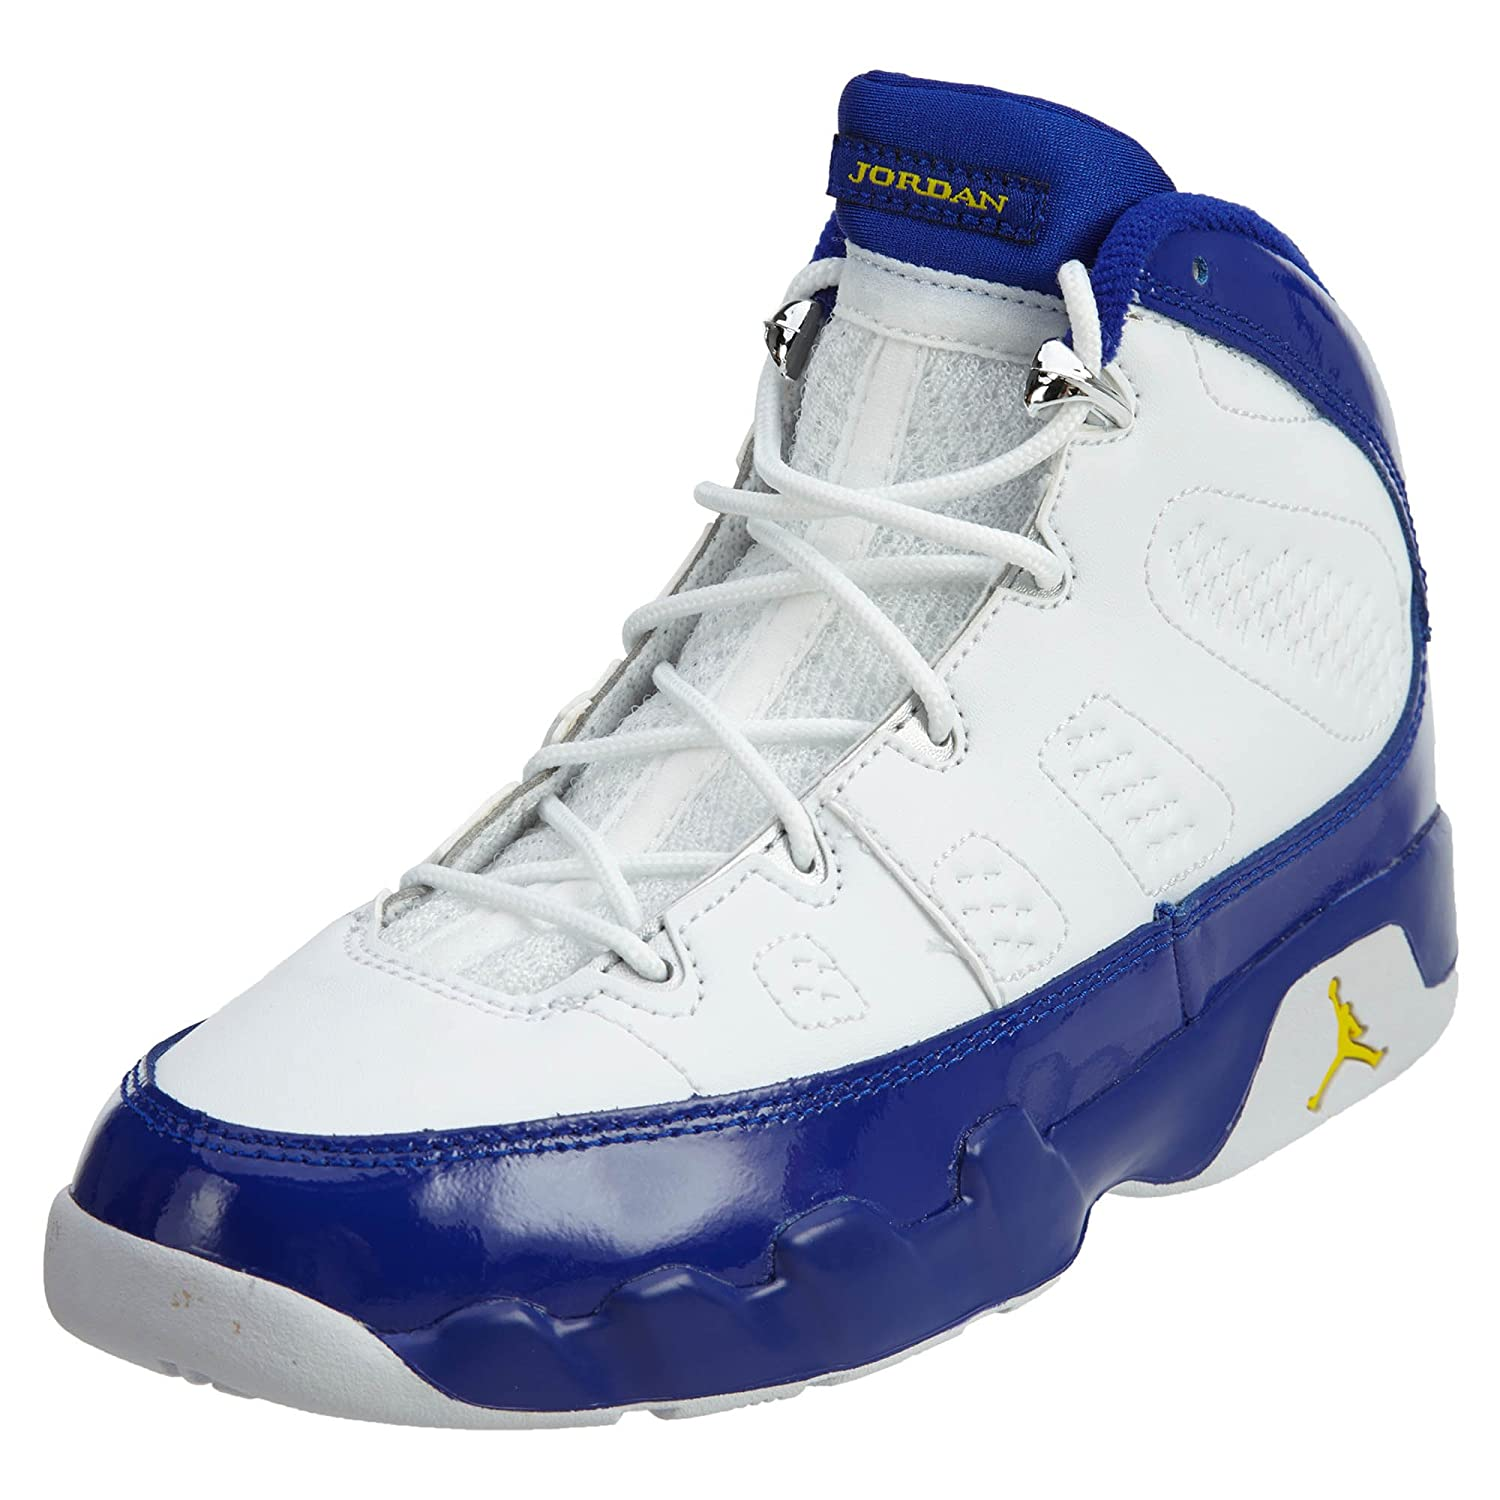 4f2c7062e66e05 Nike Air Jordan Retro 9-401811-121 Size 11.5C  Amazon.co.uk  Shoes   Bags